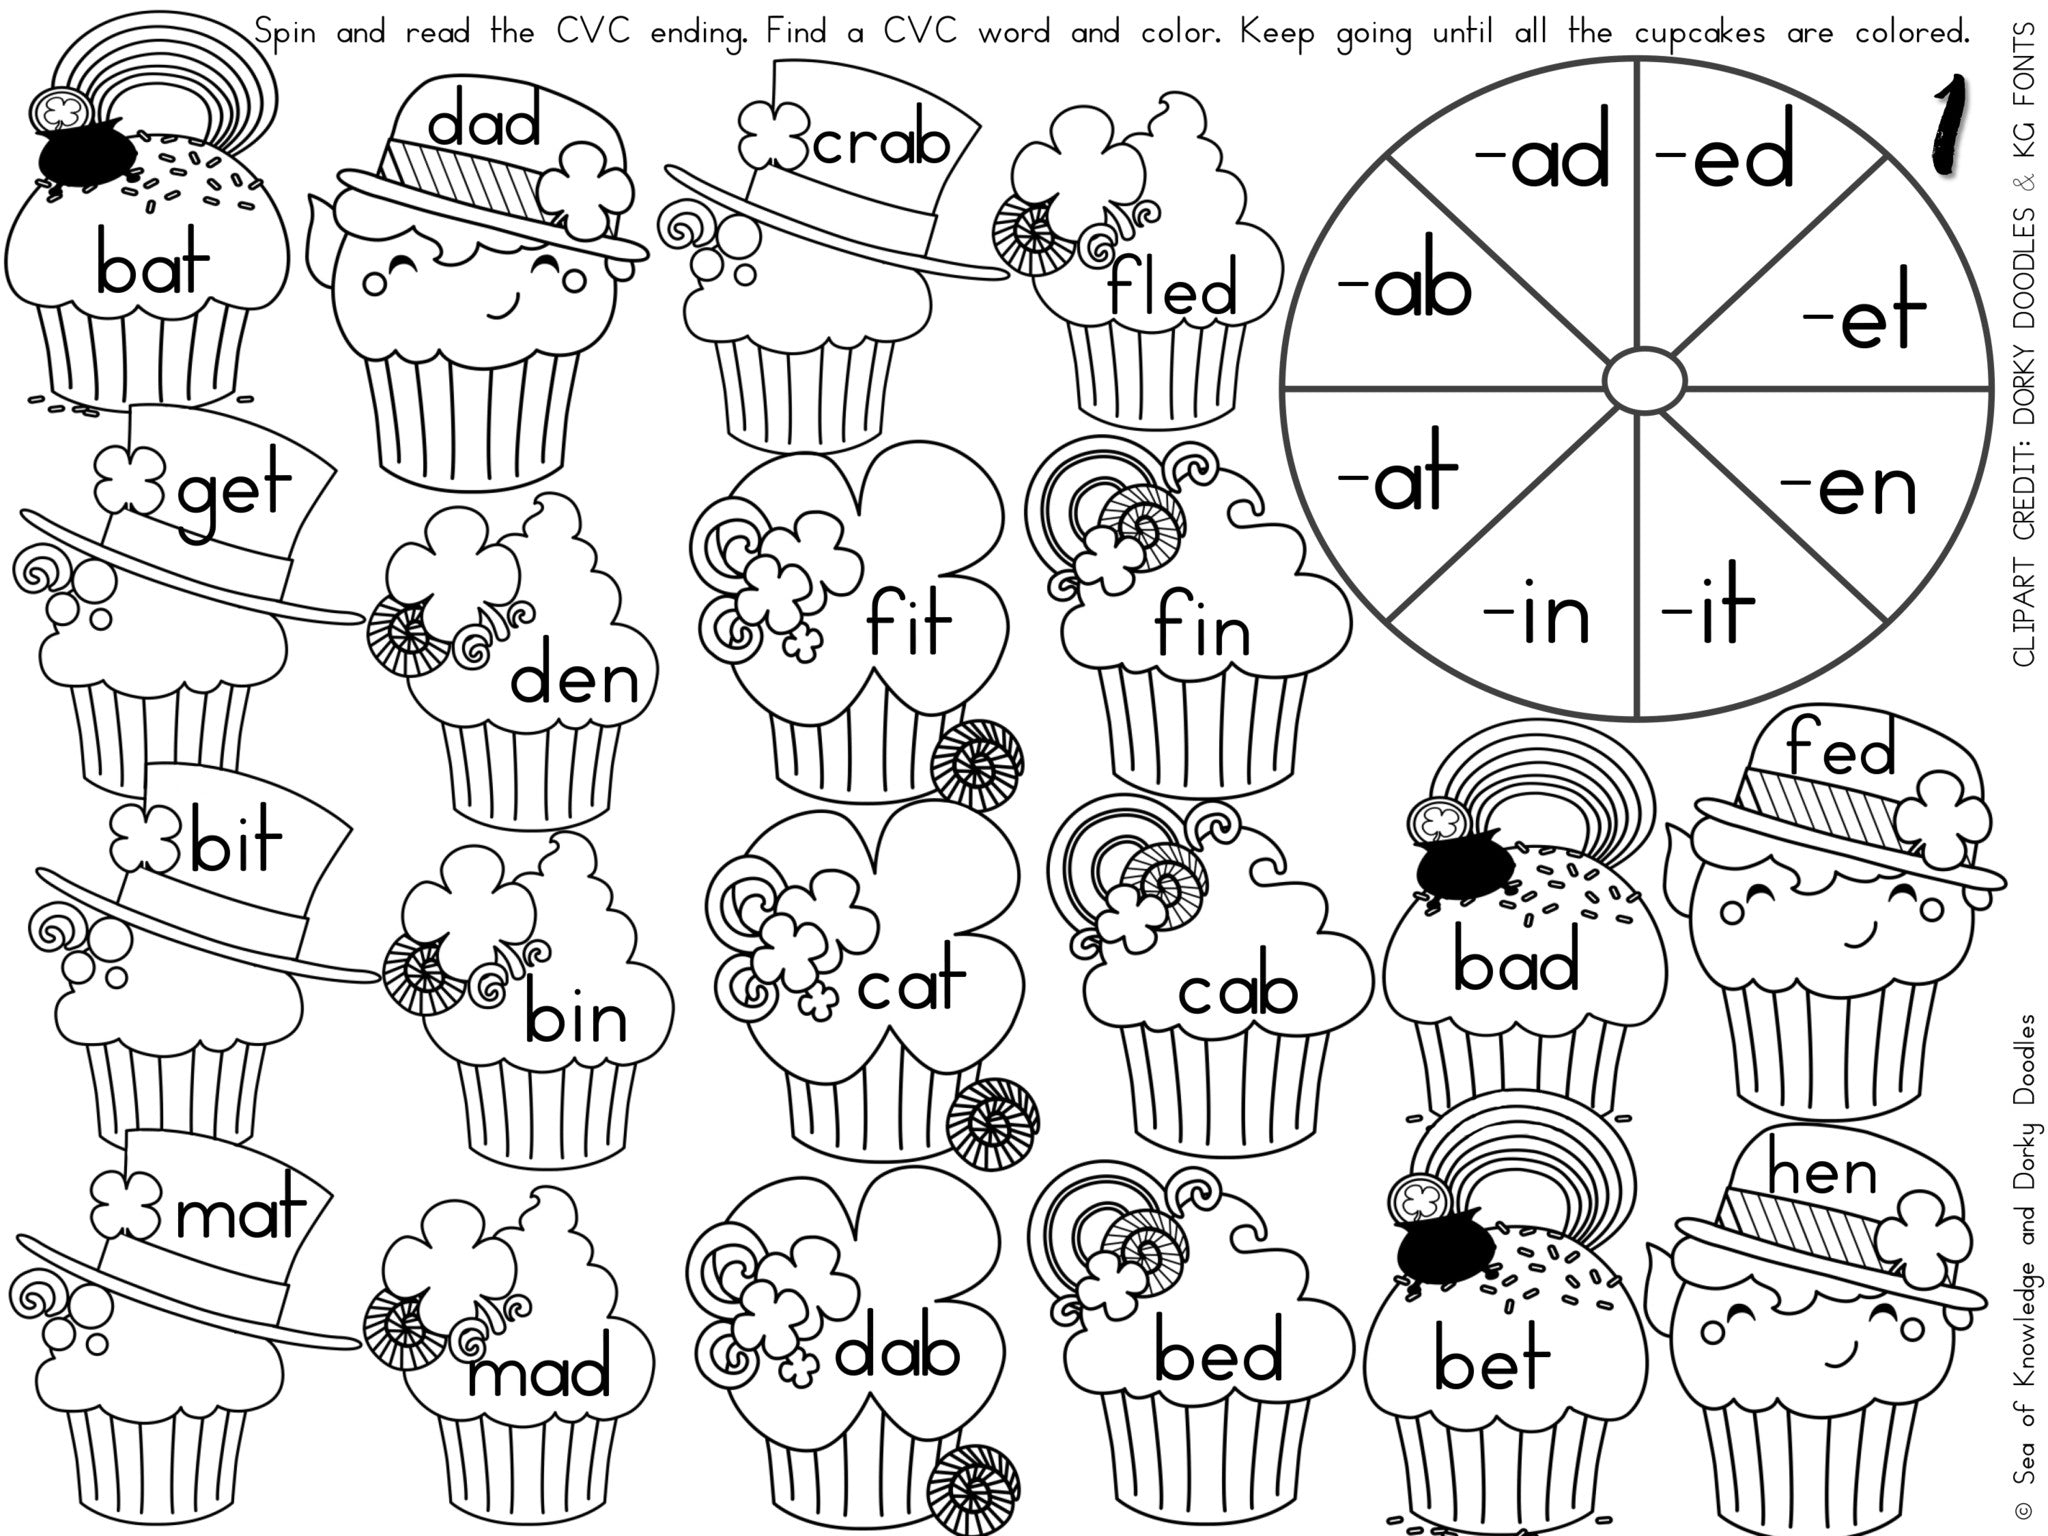 image about Free Printable Clipart for St Patrick's Day called St Patricks Working day CVC Term Spinner Worksheets Dorky Doodles